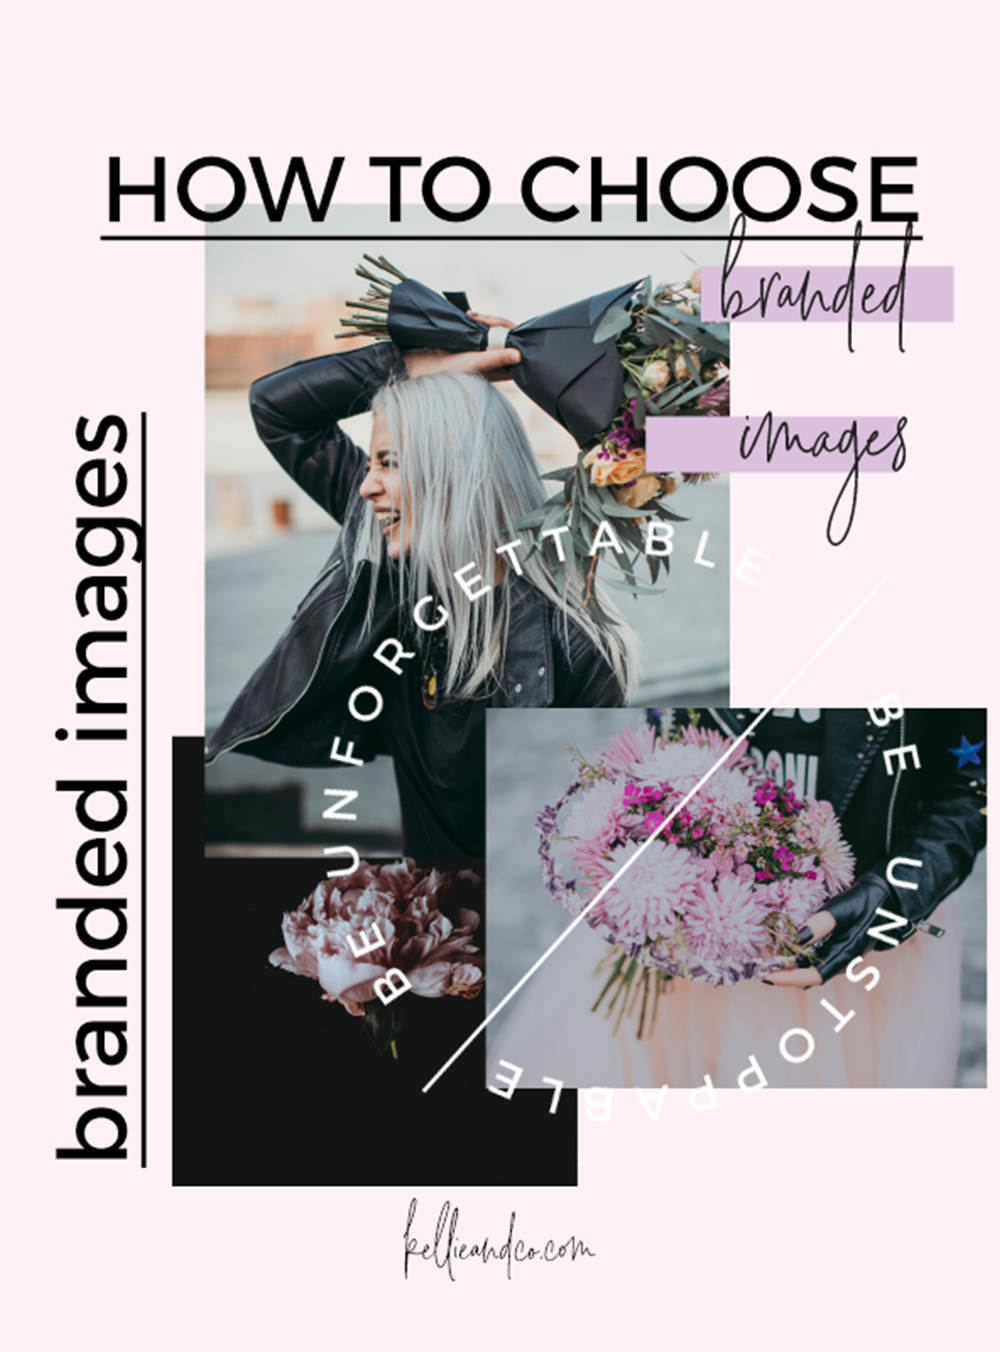 how to choose images_2.png